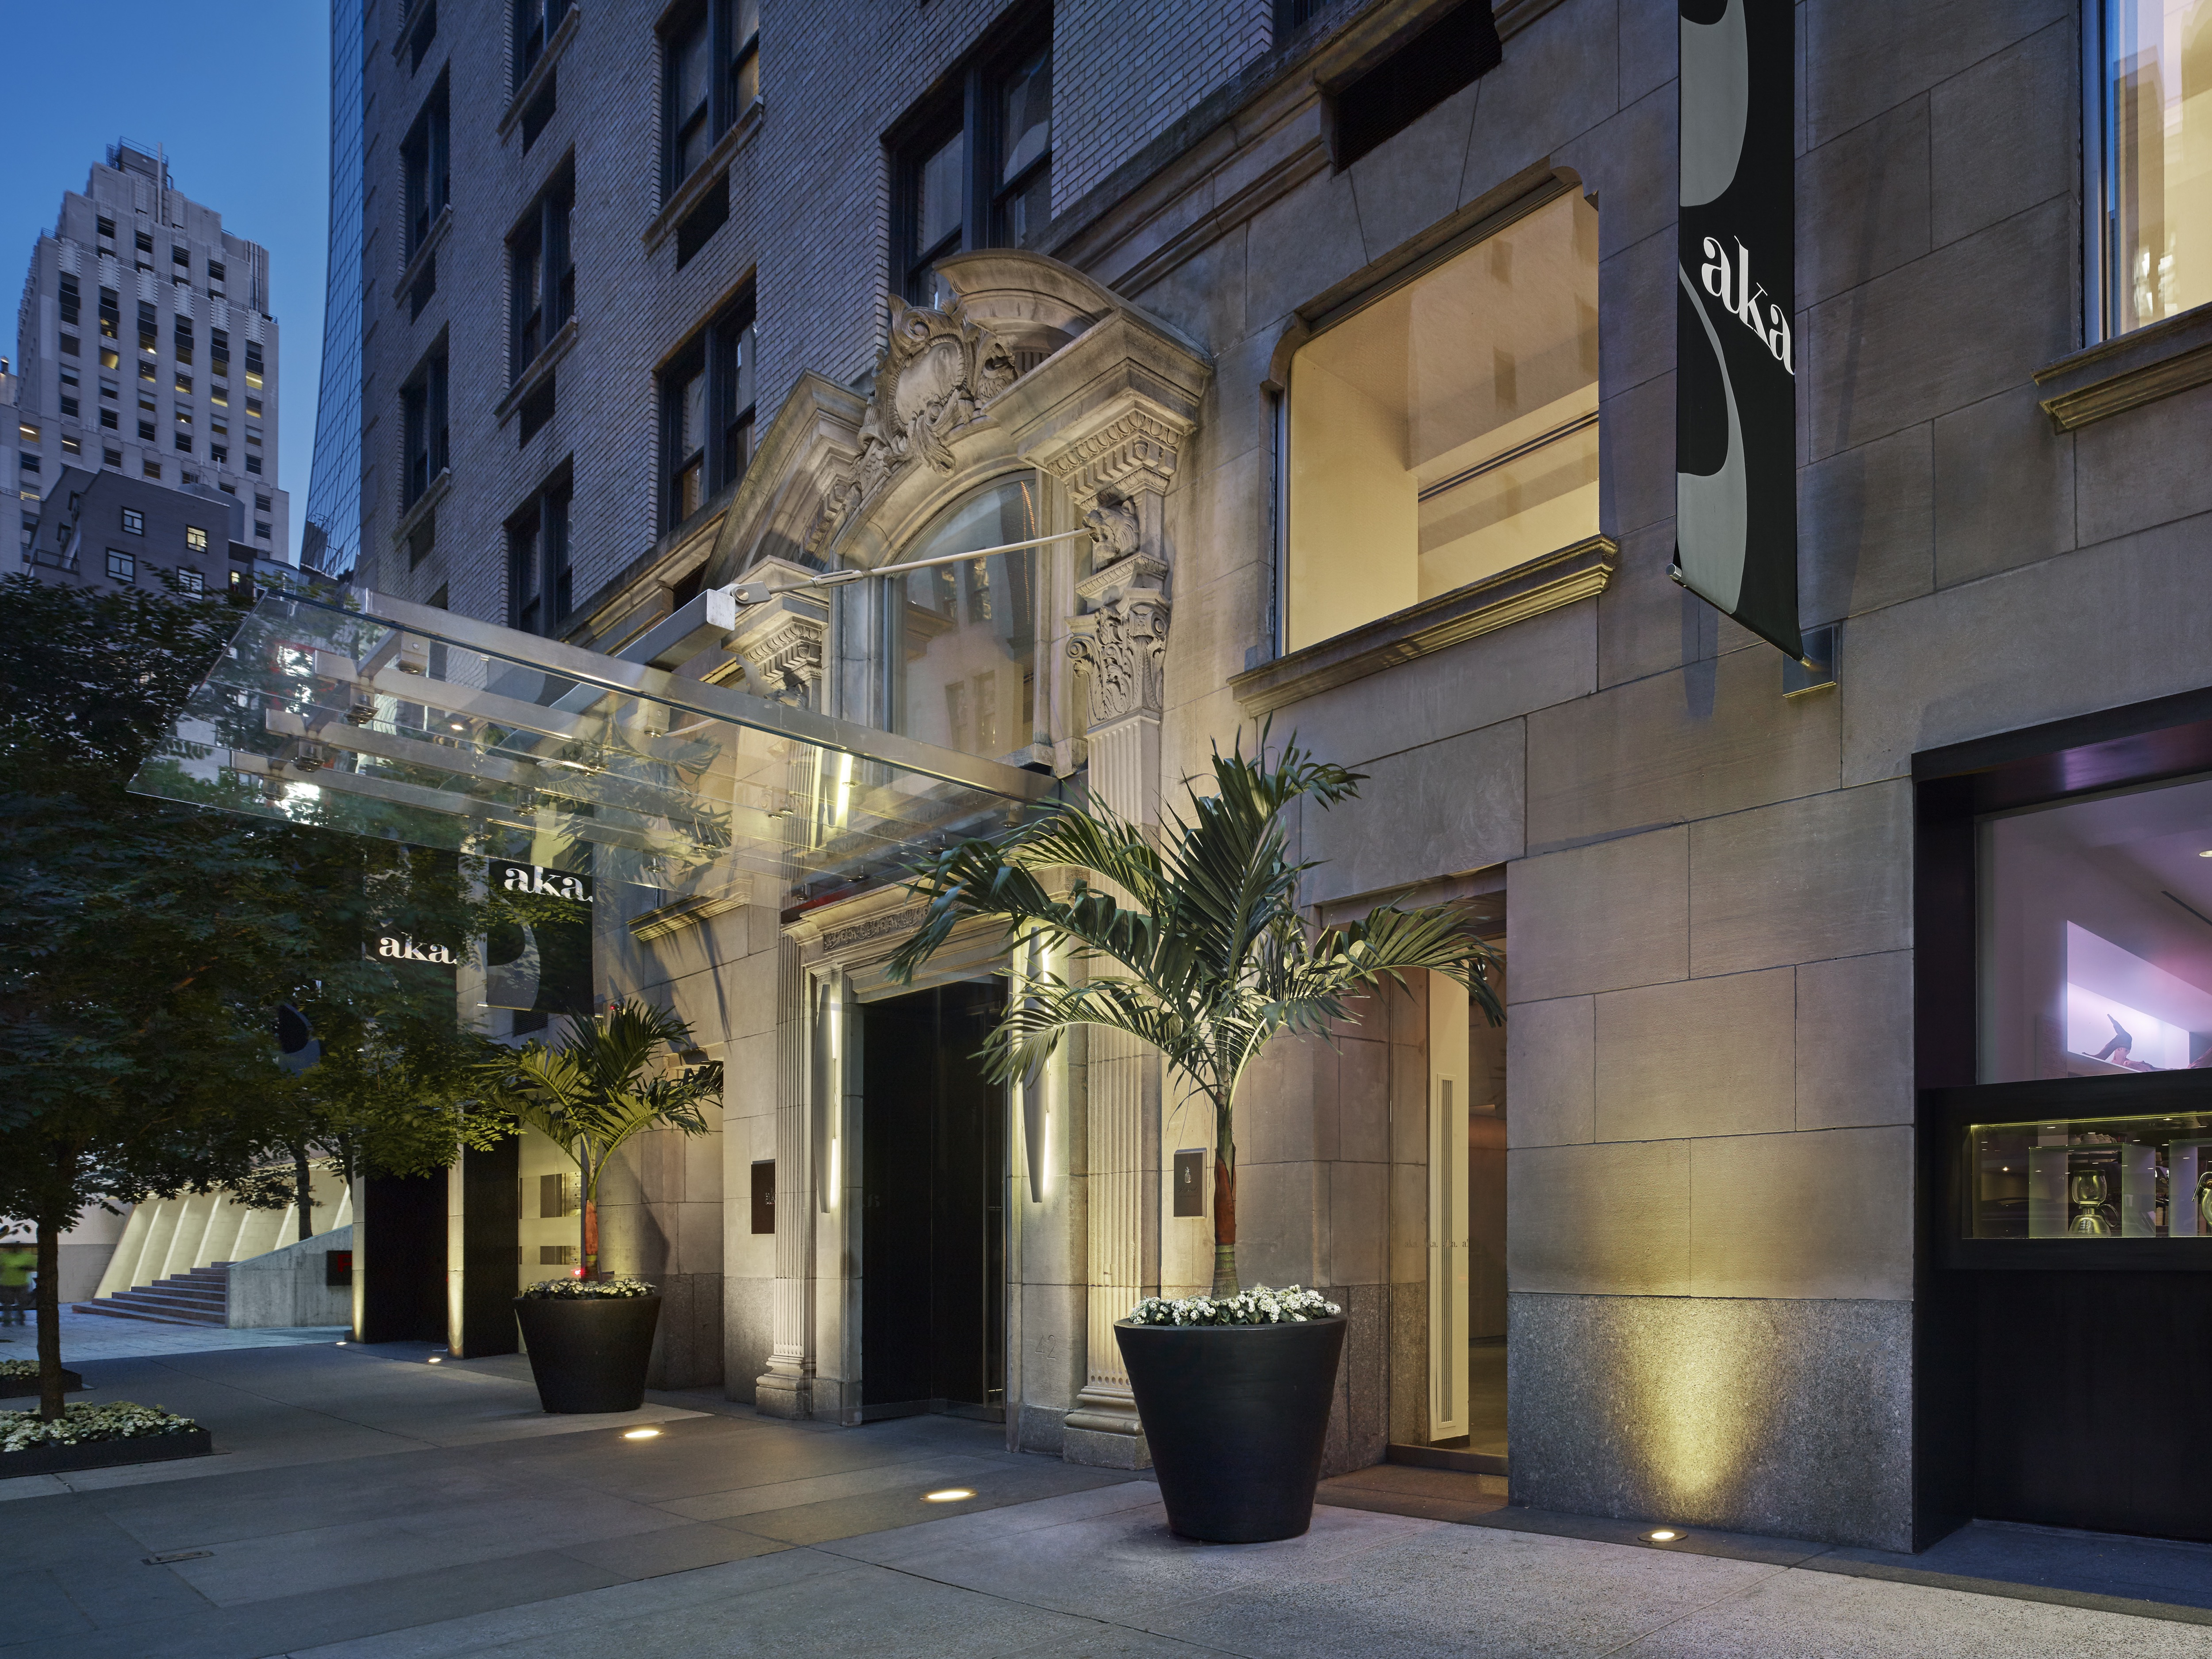 Central Park Hotel NYC | Midtown Hotel NYC | AKA